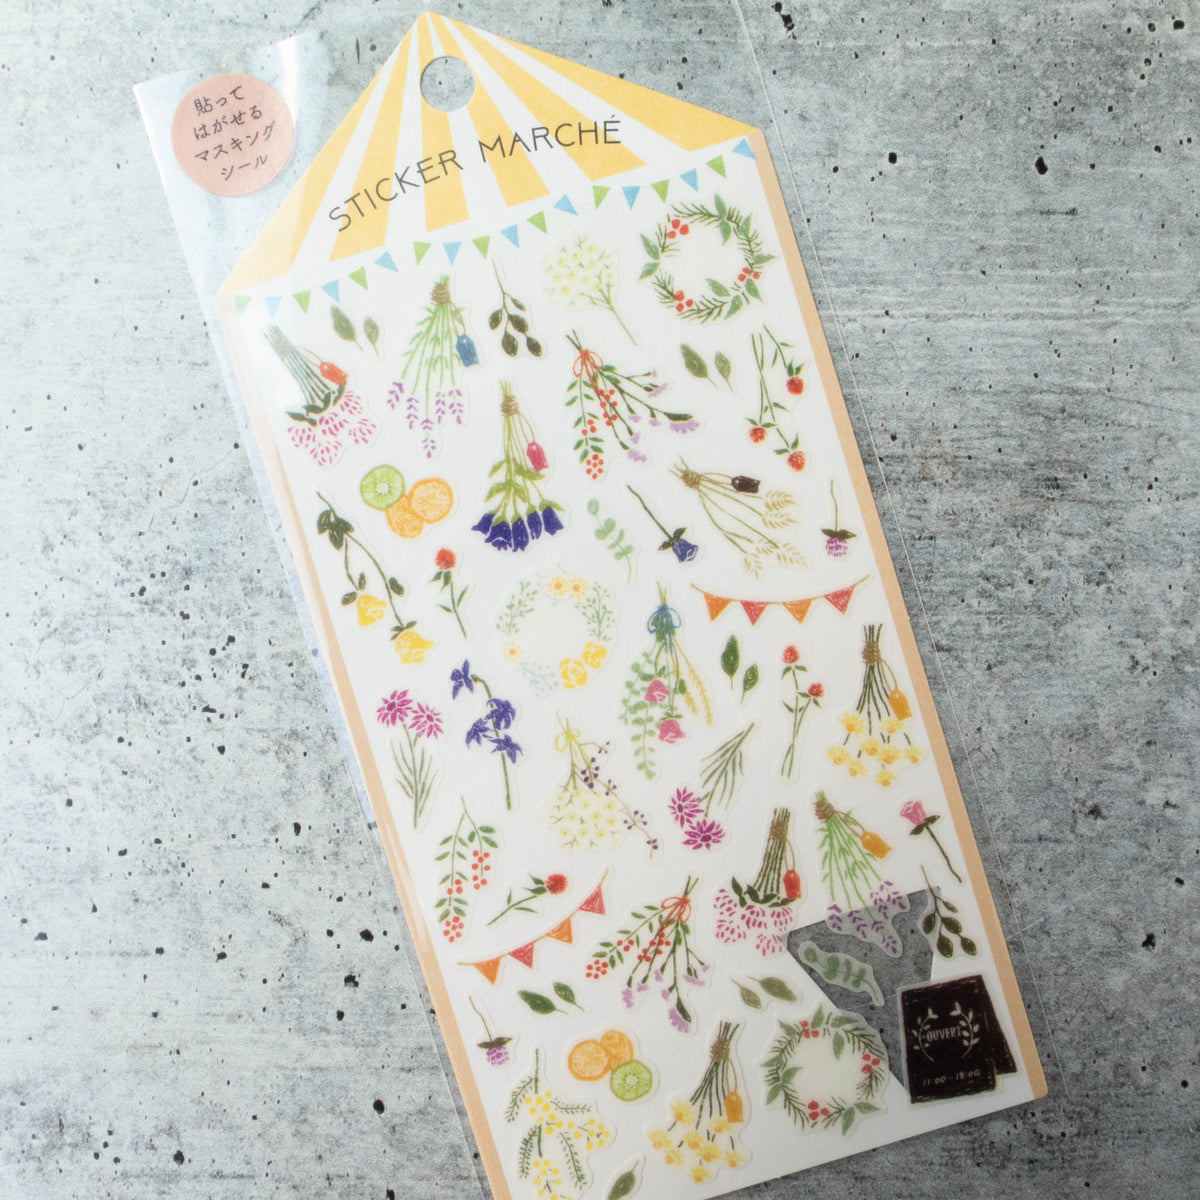 Midori Sticker Marche Stickers - Dried Flowers